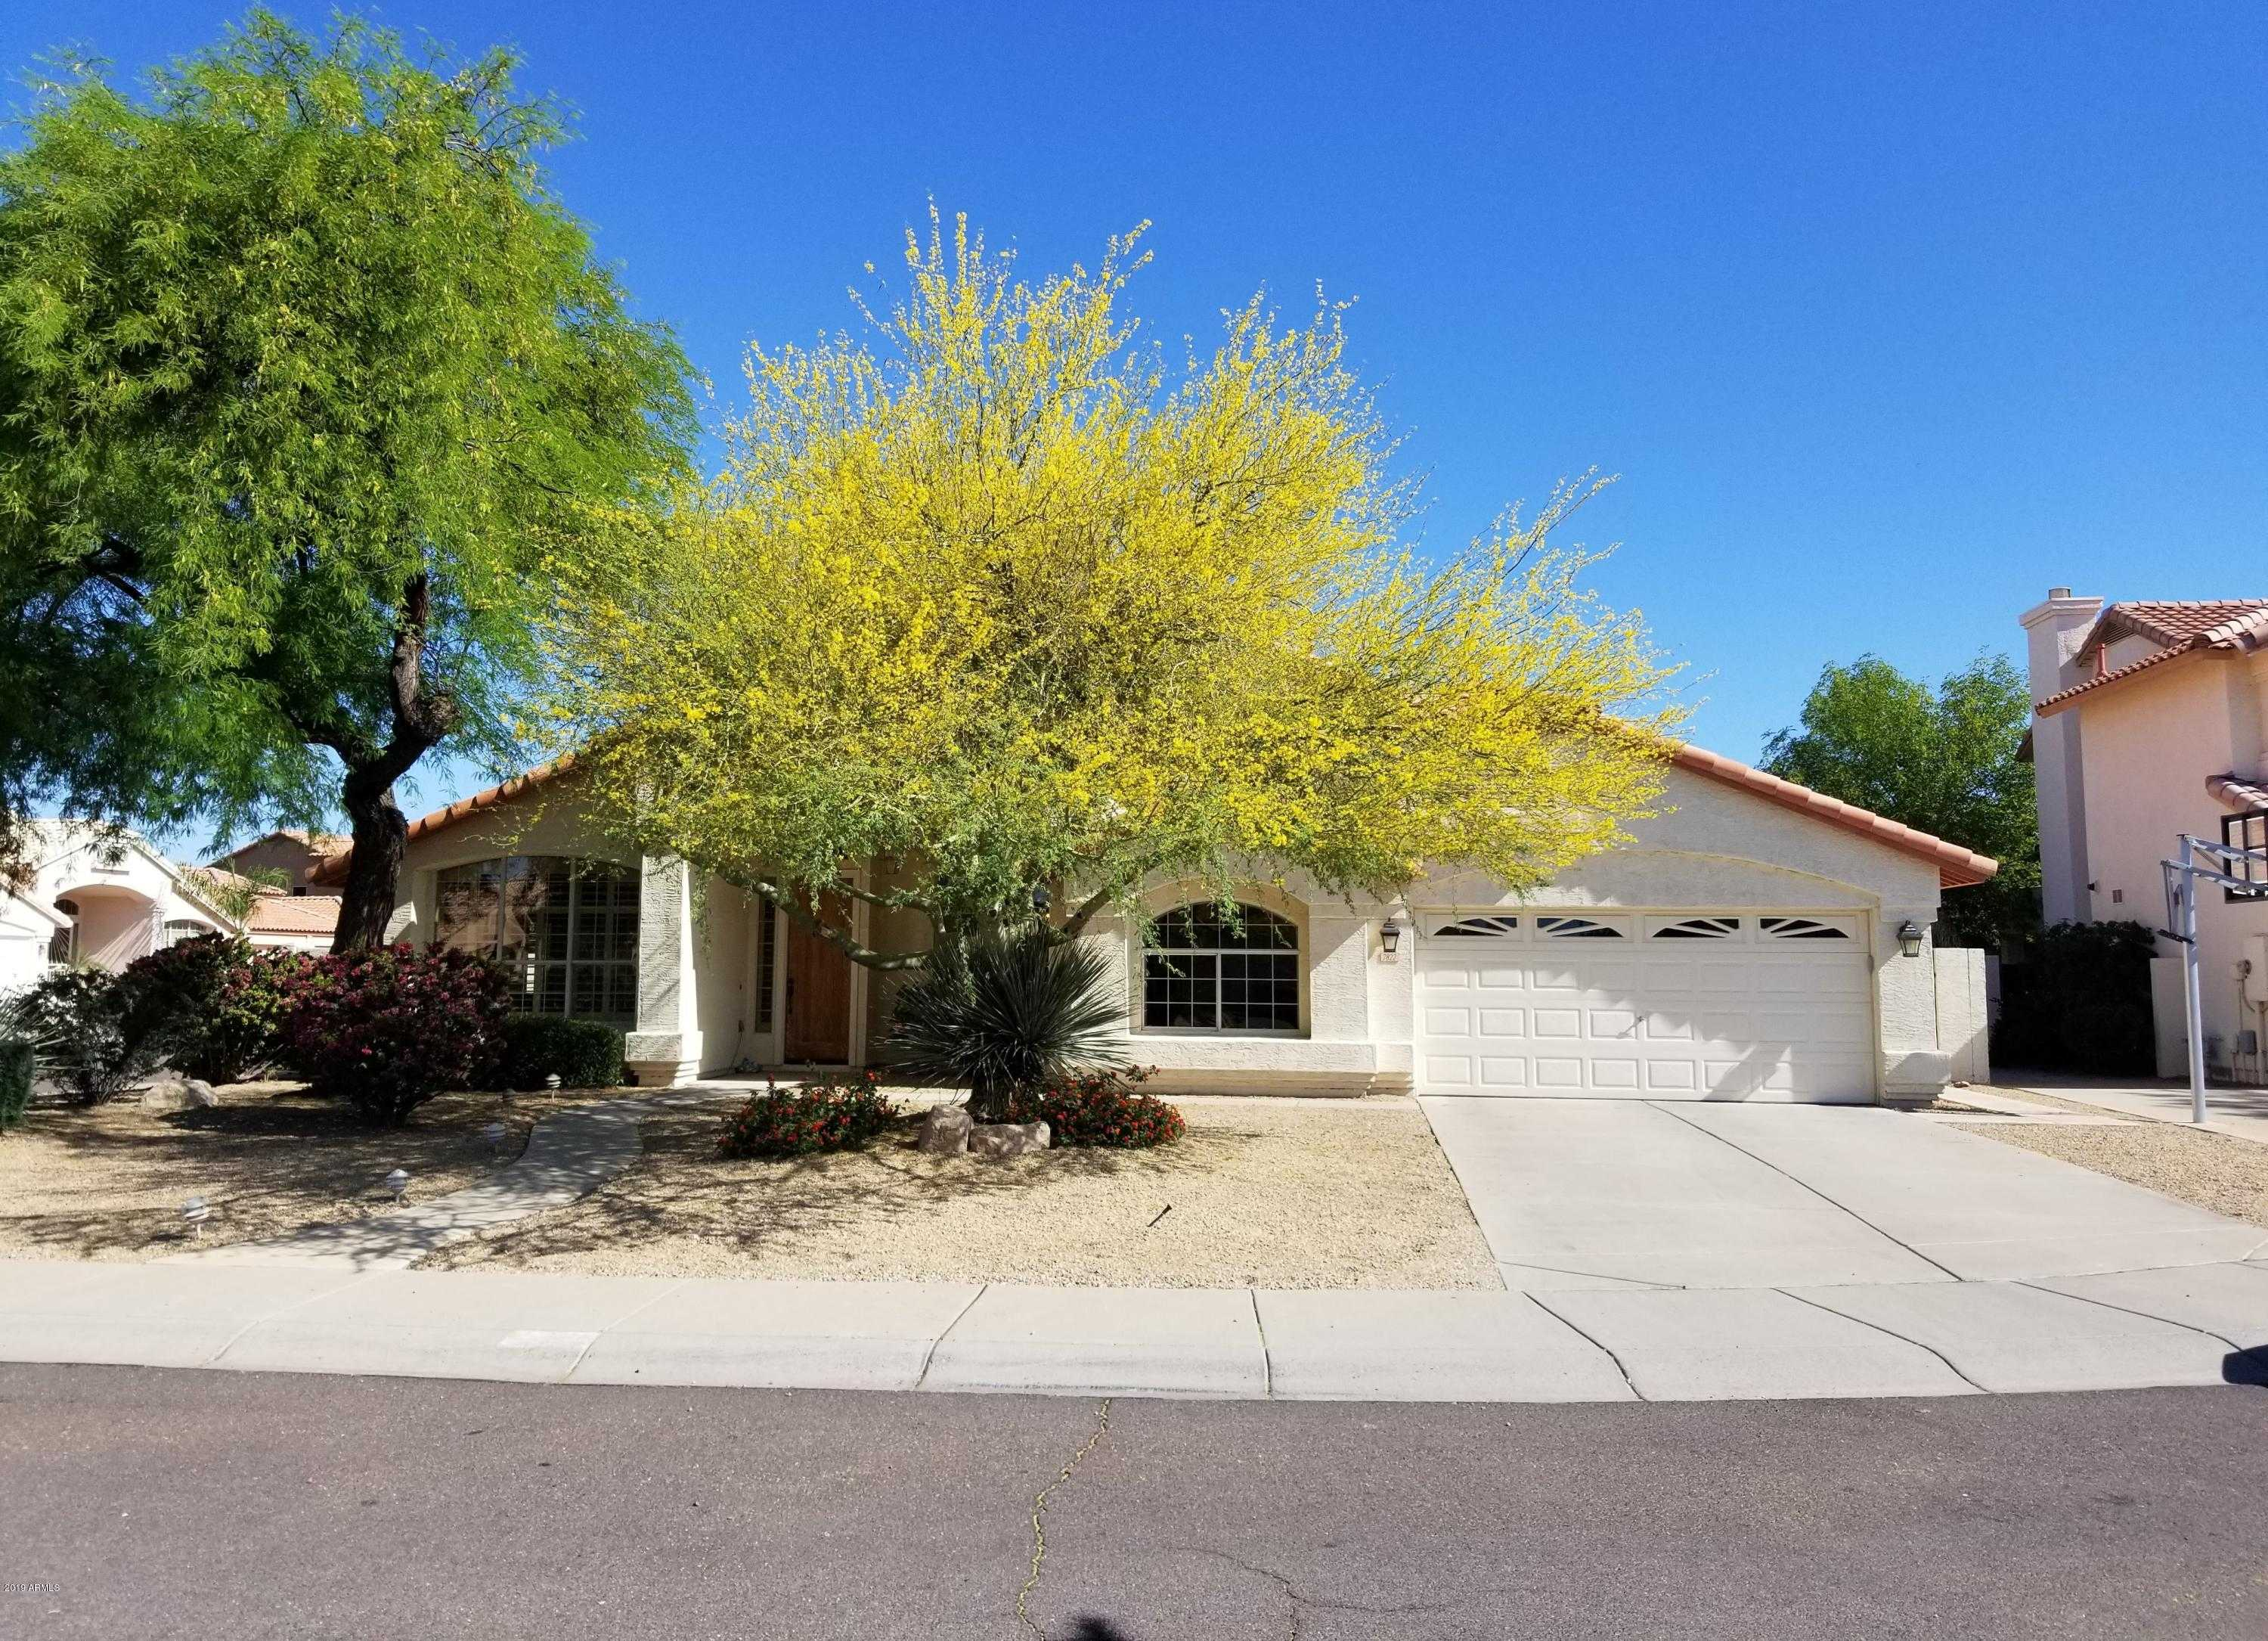 $400,000 - 4Br/3Ba - Home for Sale in Continental At Arrowhead Ranch, Glendale